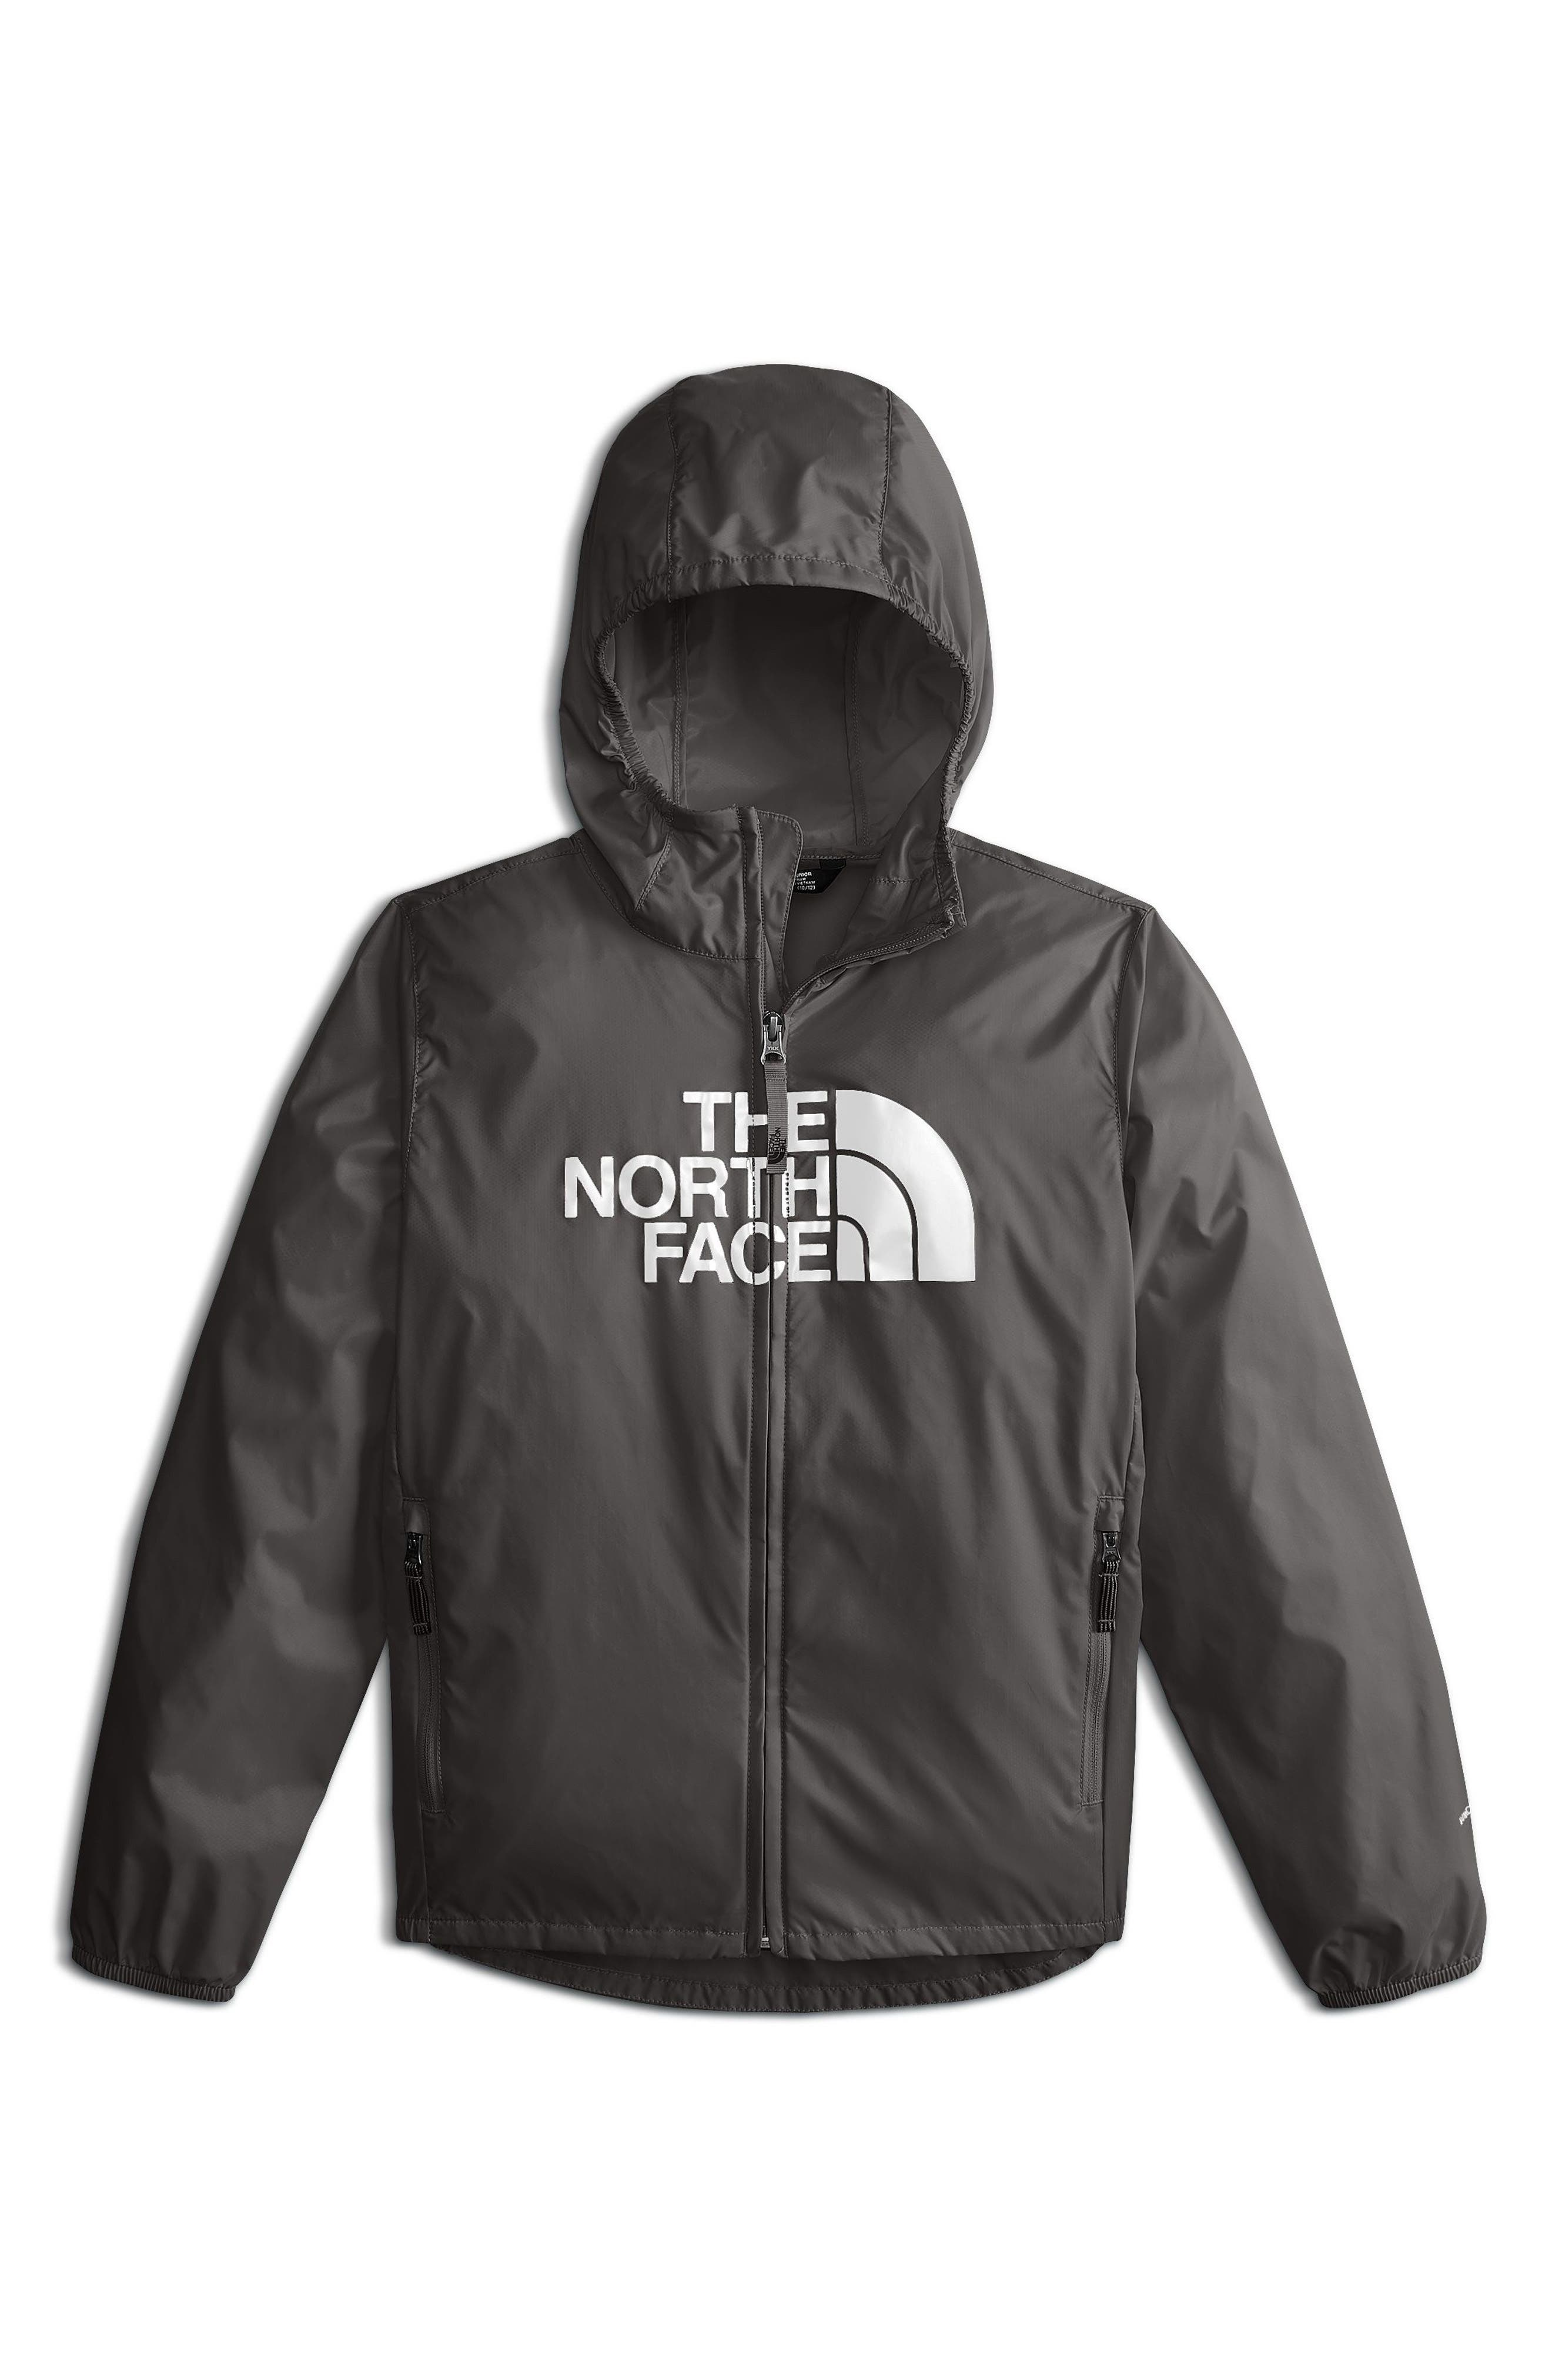 THE NORTH FACE, Flurry Hooded Windbreaker Jacket, Main thumbnail 1, color, GRAPHITE GREY